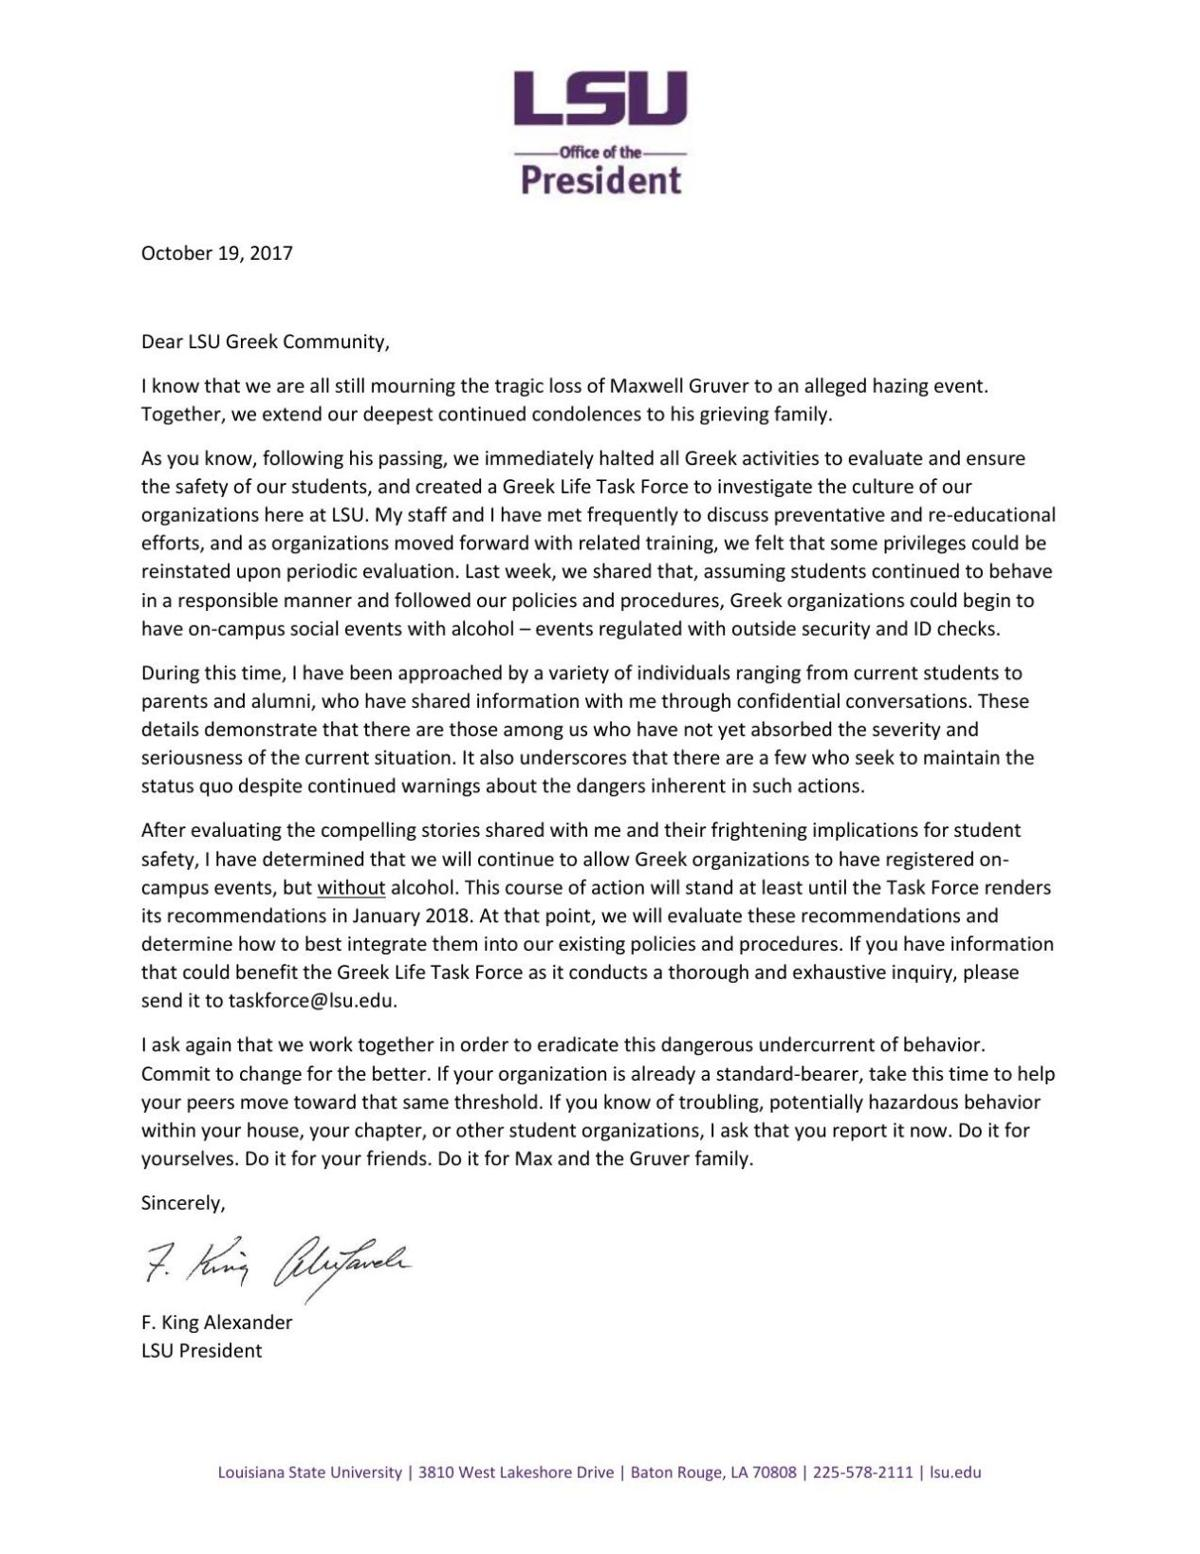 LSU President's Letter to Greek Life Reinstating Alcohol Ban